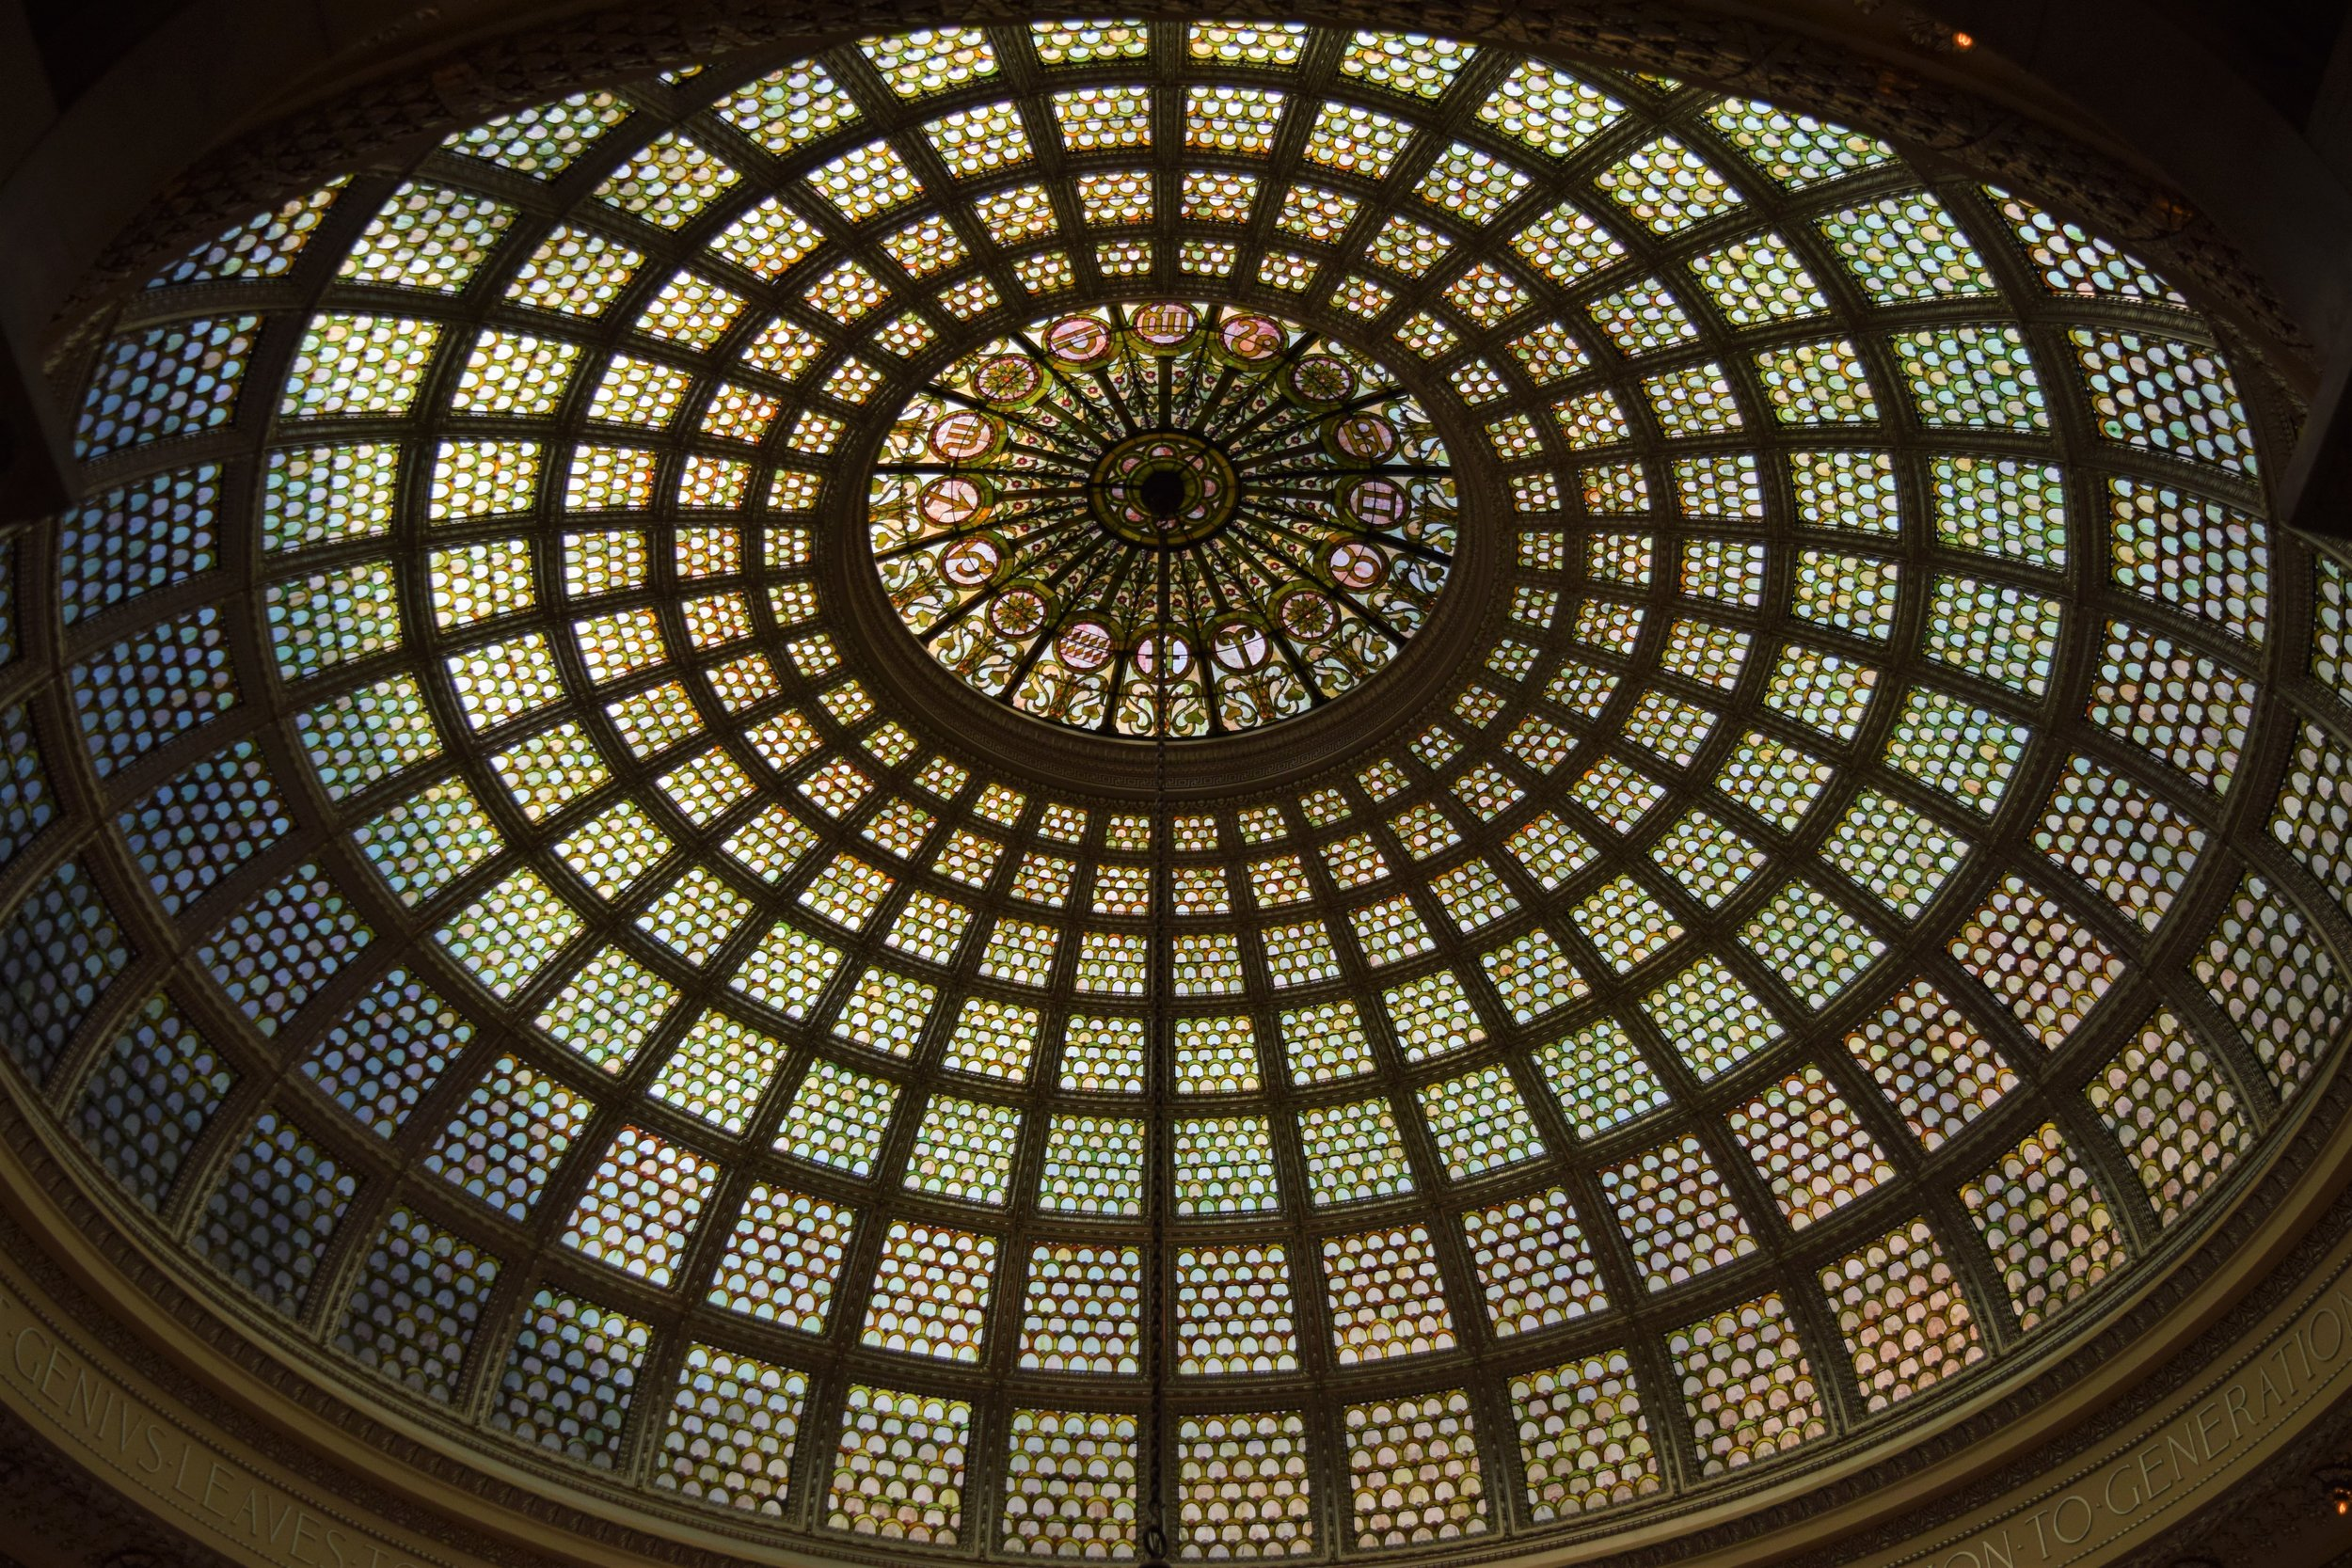 Tiffany Glass Ceiling at the Chicago Cultural Center - photo by Maren Robinson